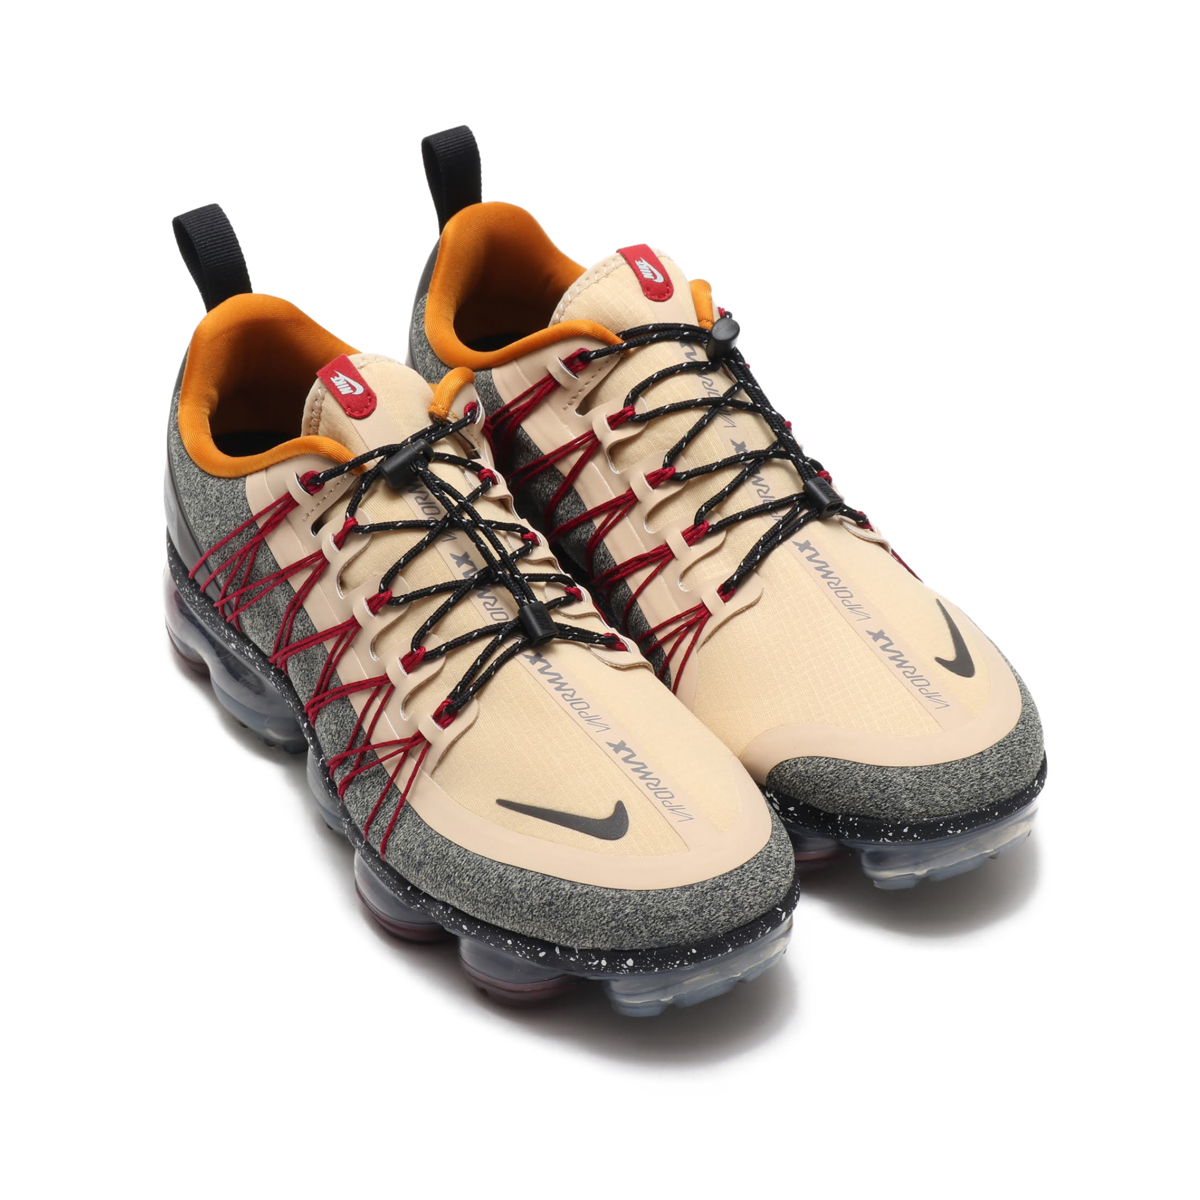 f2219a37014e NIKE AIR VAPORMAX RUN UTILITY (ナイキエアヴェイパーマックスランユ-ティリティ) DESERT ORE REFLECT  SILVER-BLACK 18HO-S